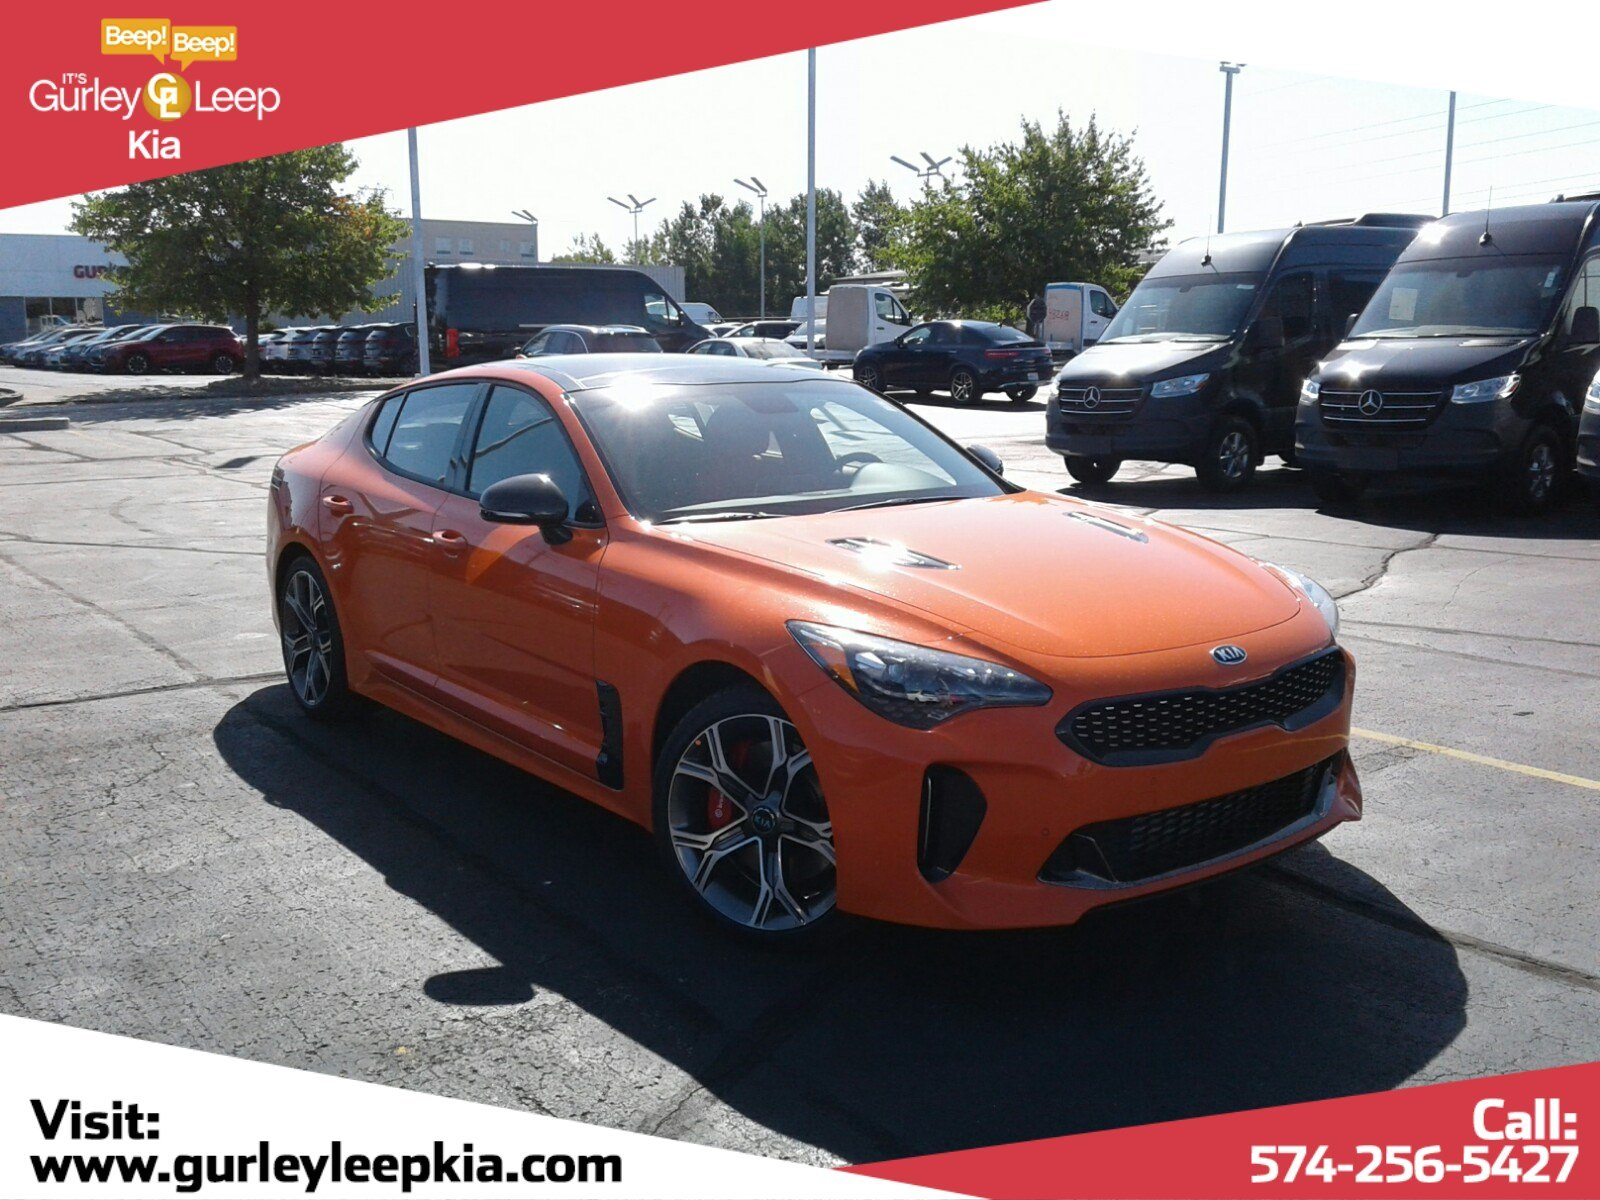 New 2019 Kia Stinger GTS